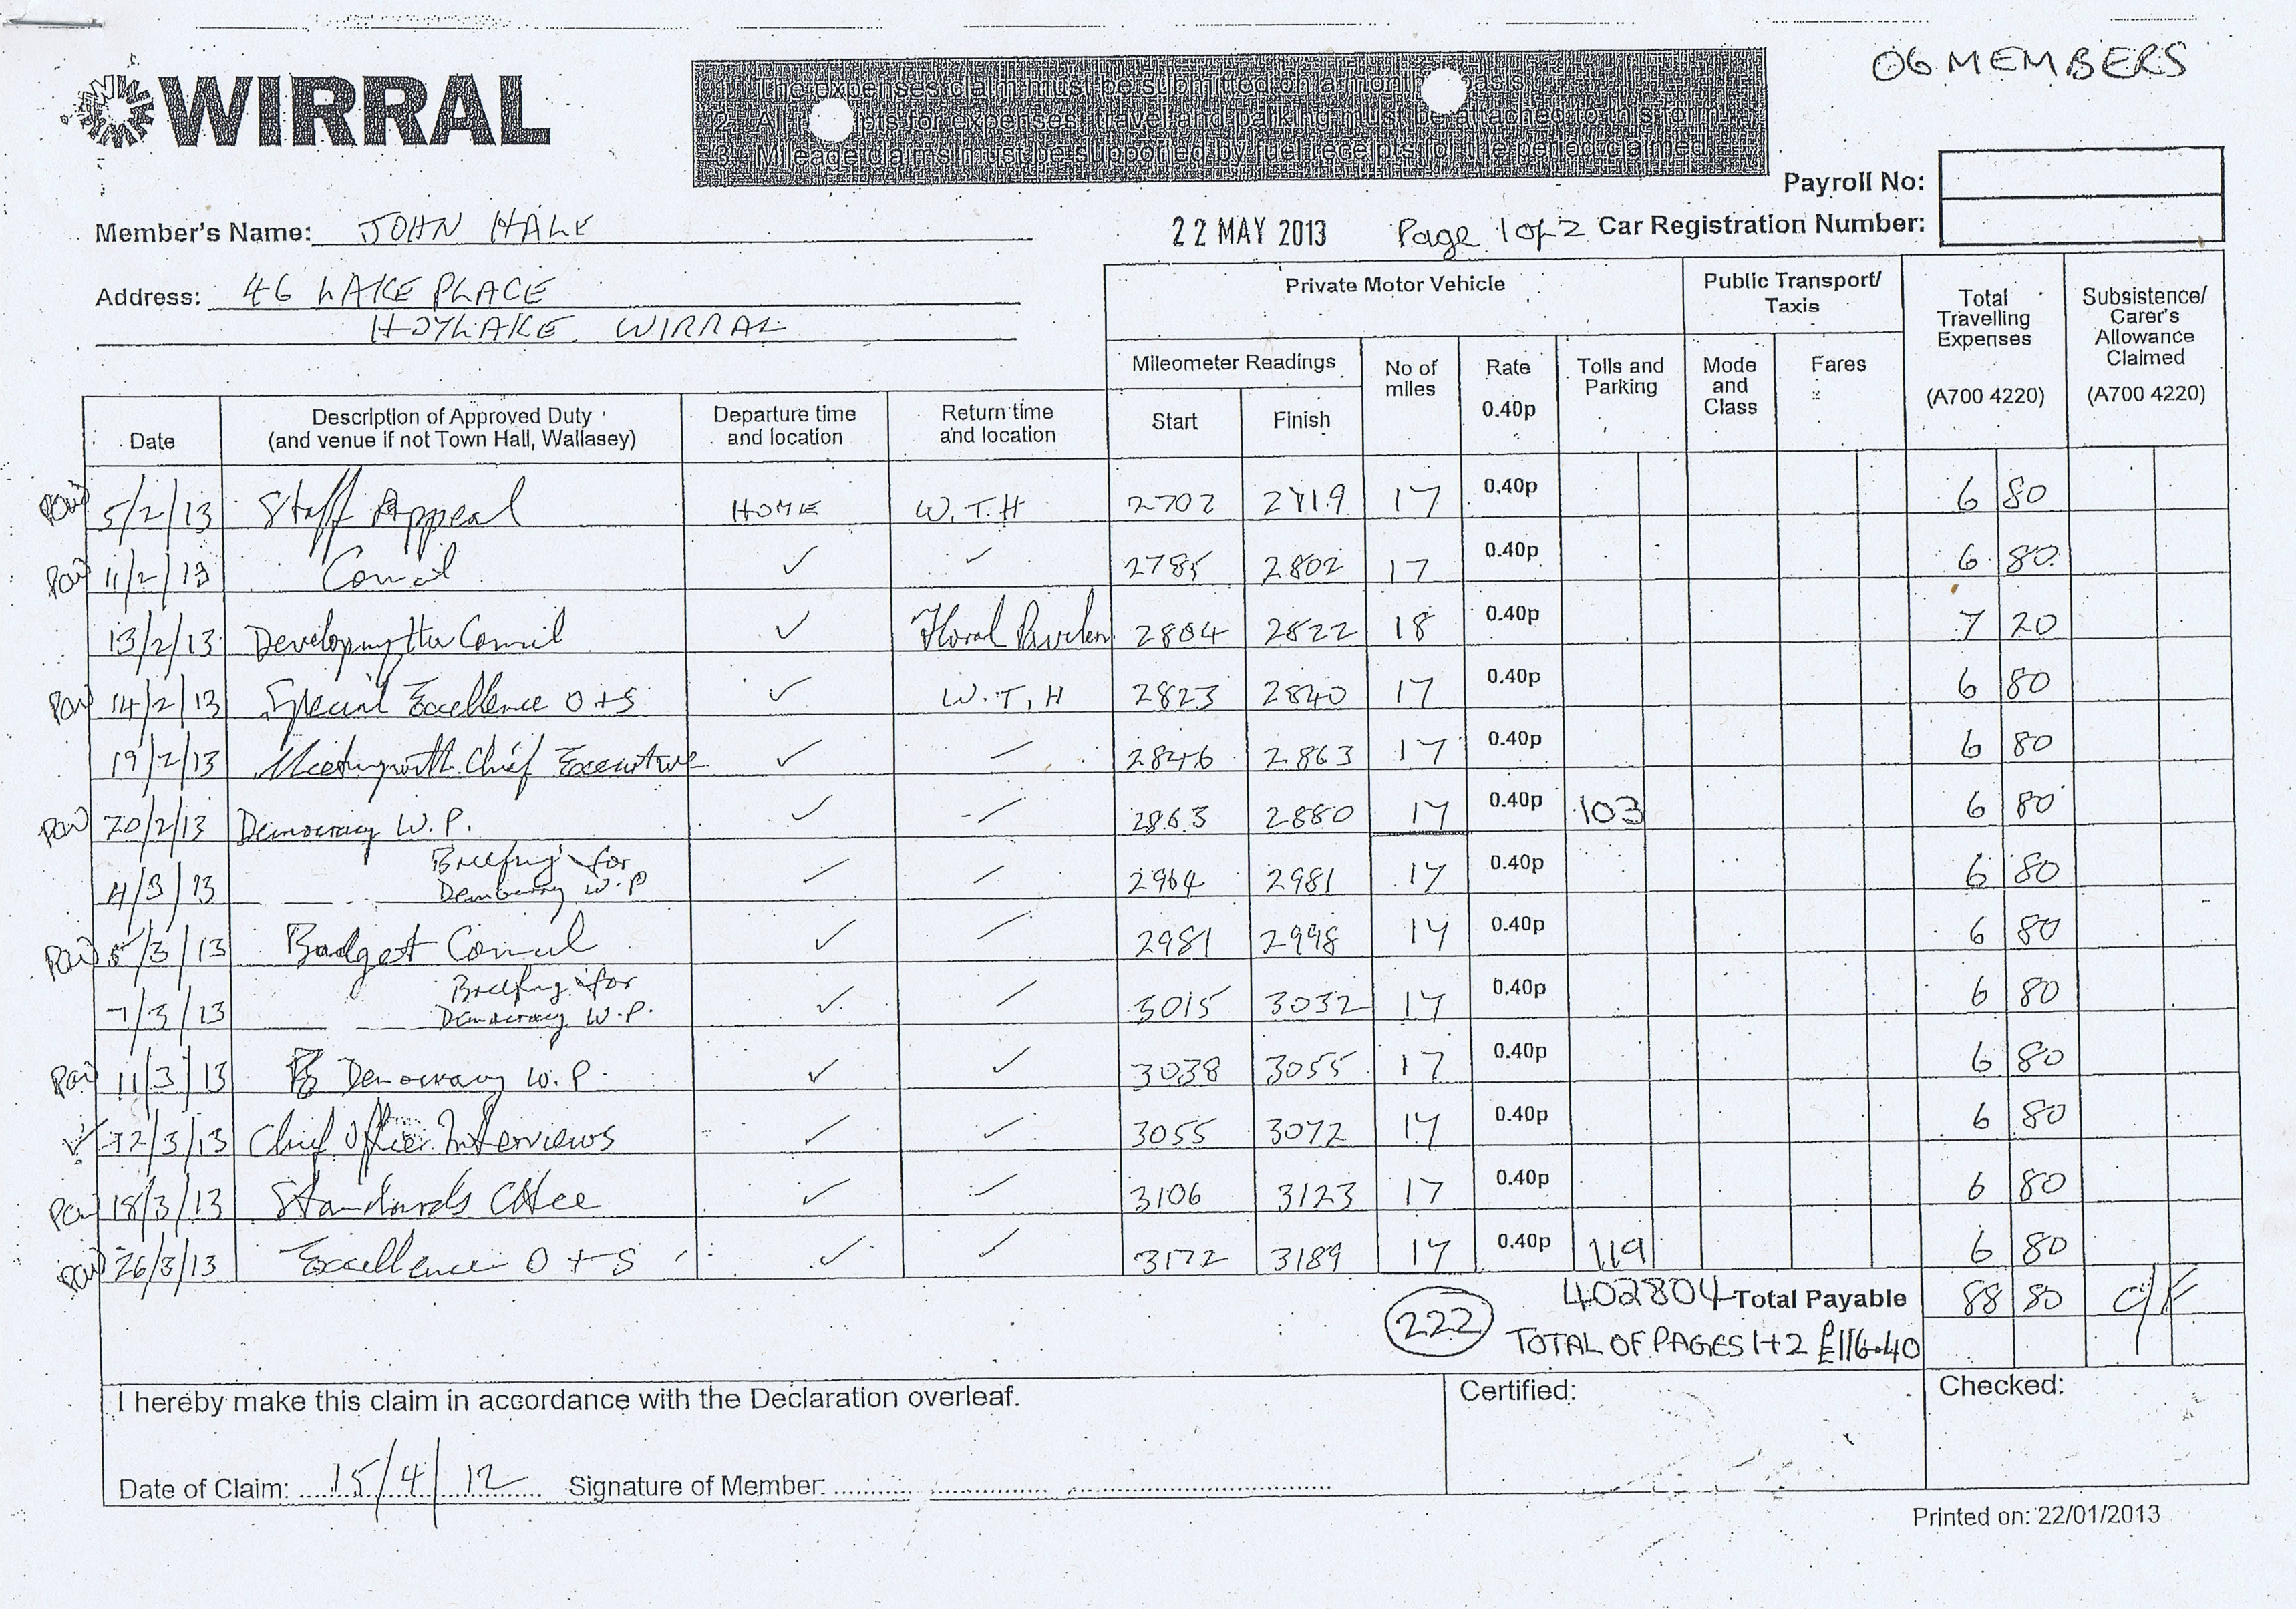 Expense claim forms for Councillor John Hale (Wirral